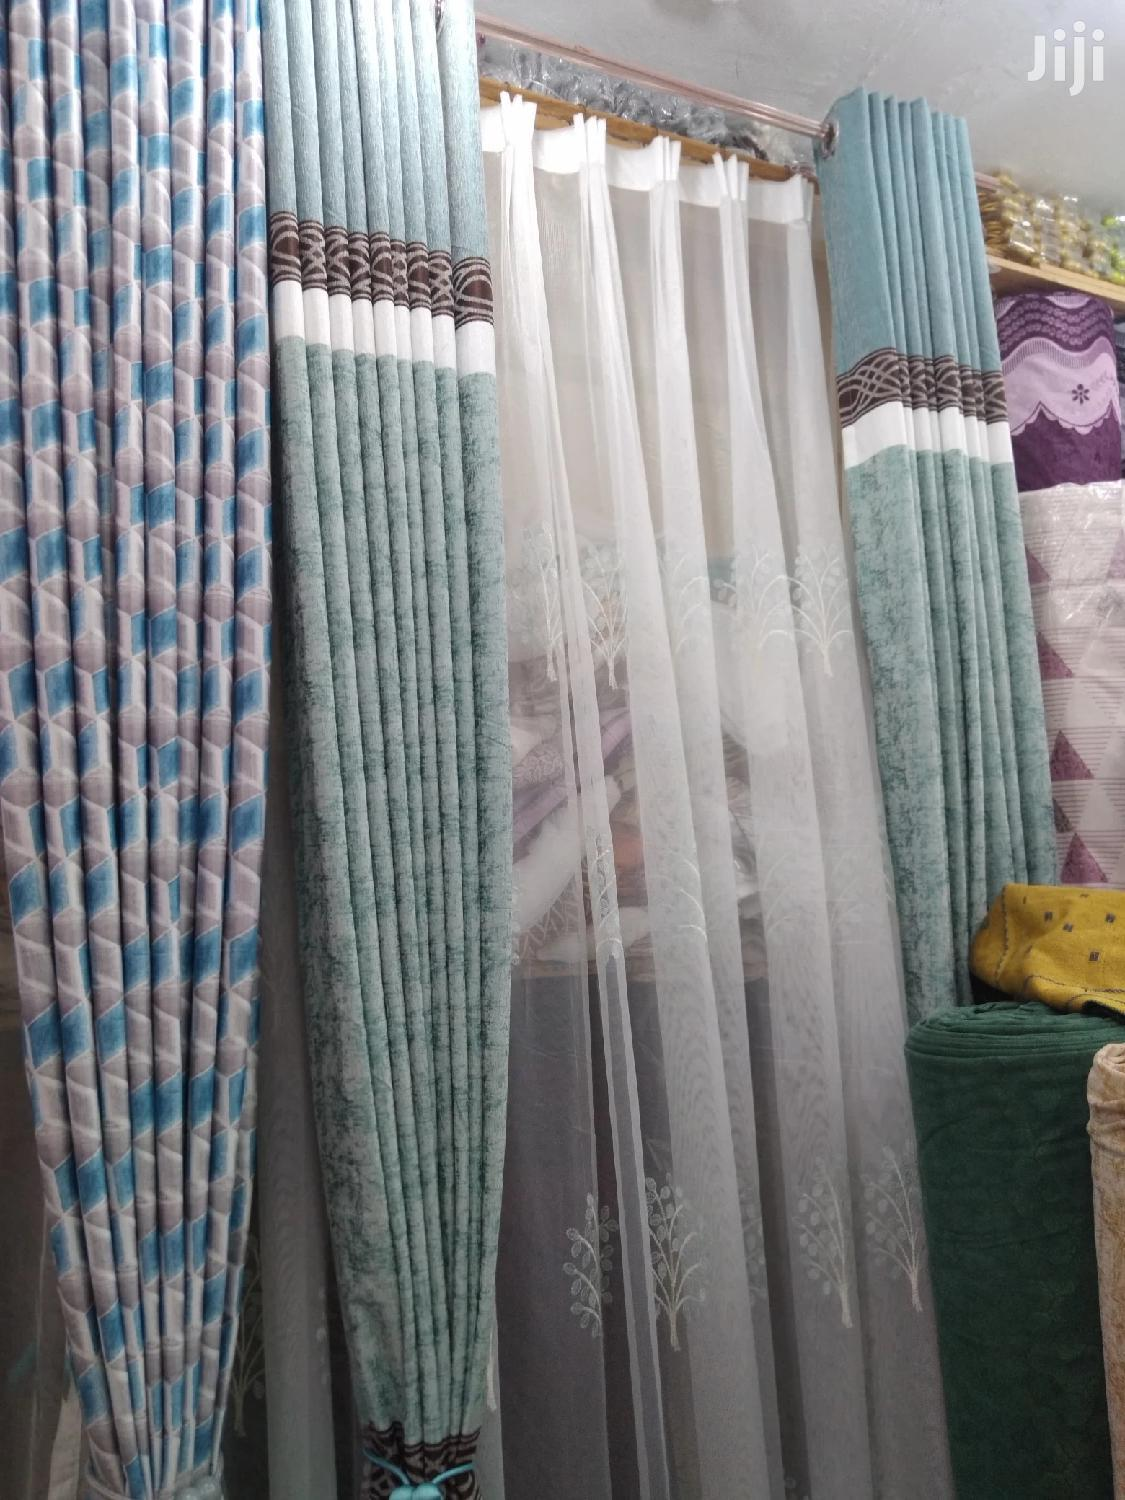 Curtains and Curtains